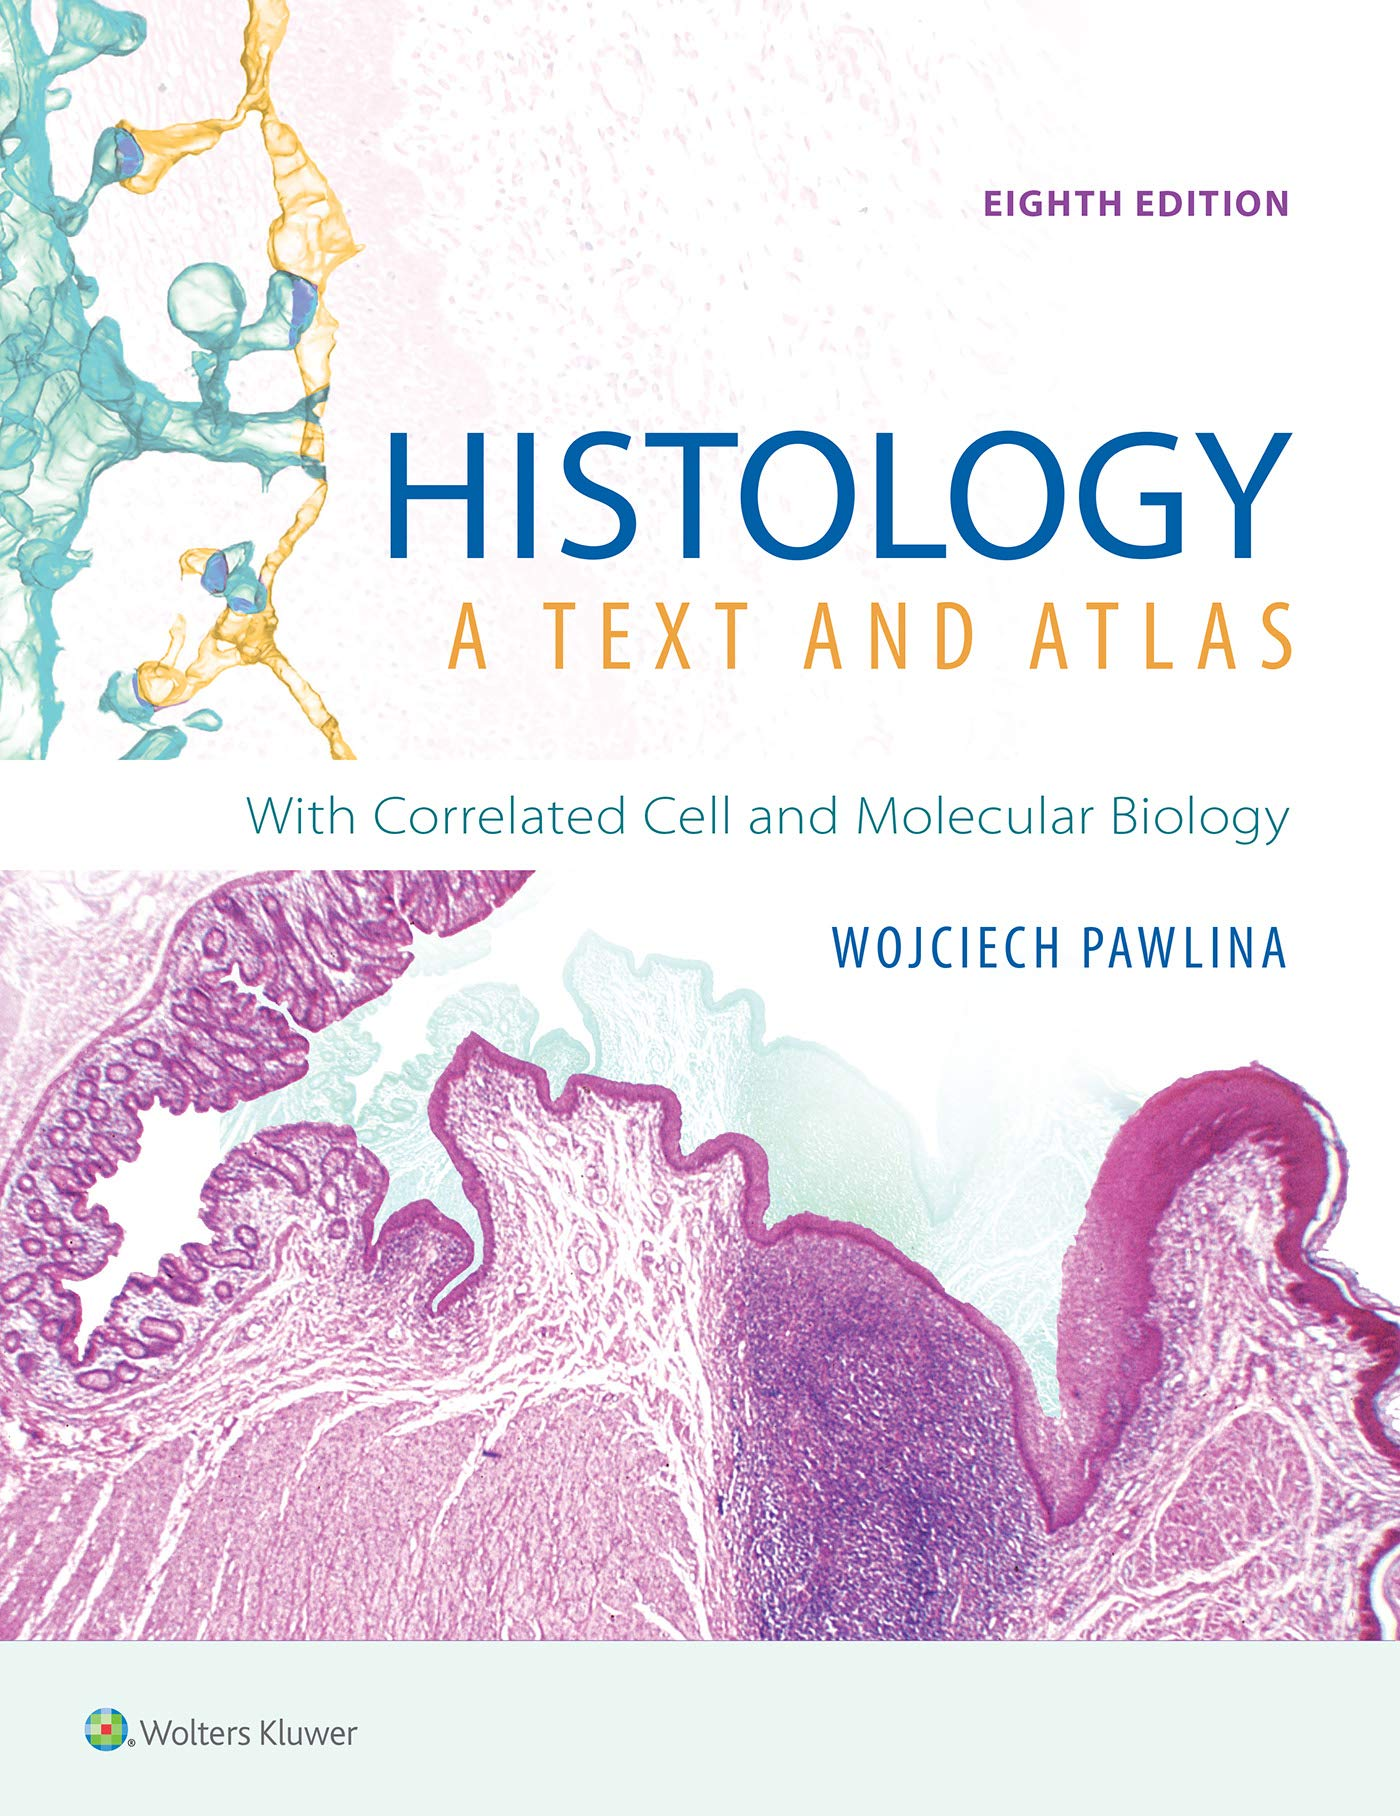 Image OfHistology: A Text And Atlas: With Correlated Cell And Molecular Biology